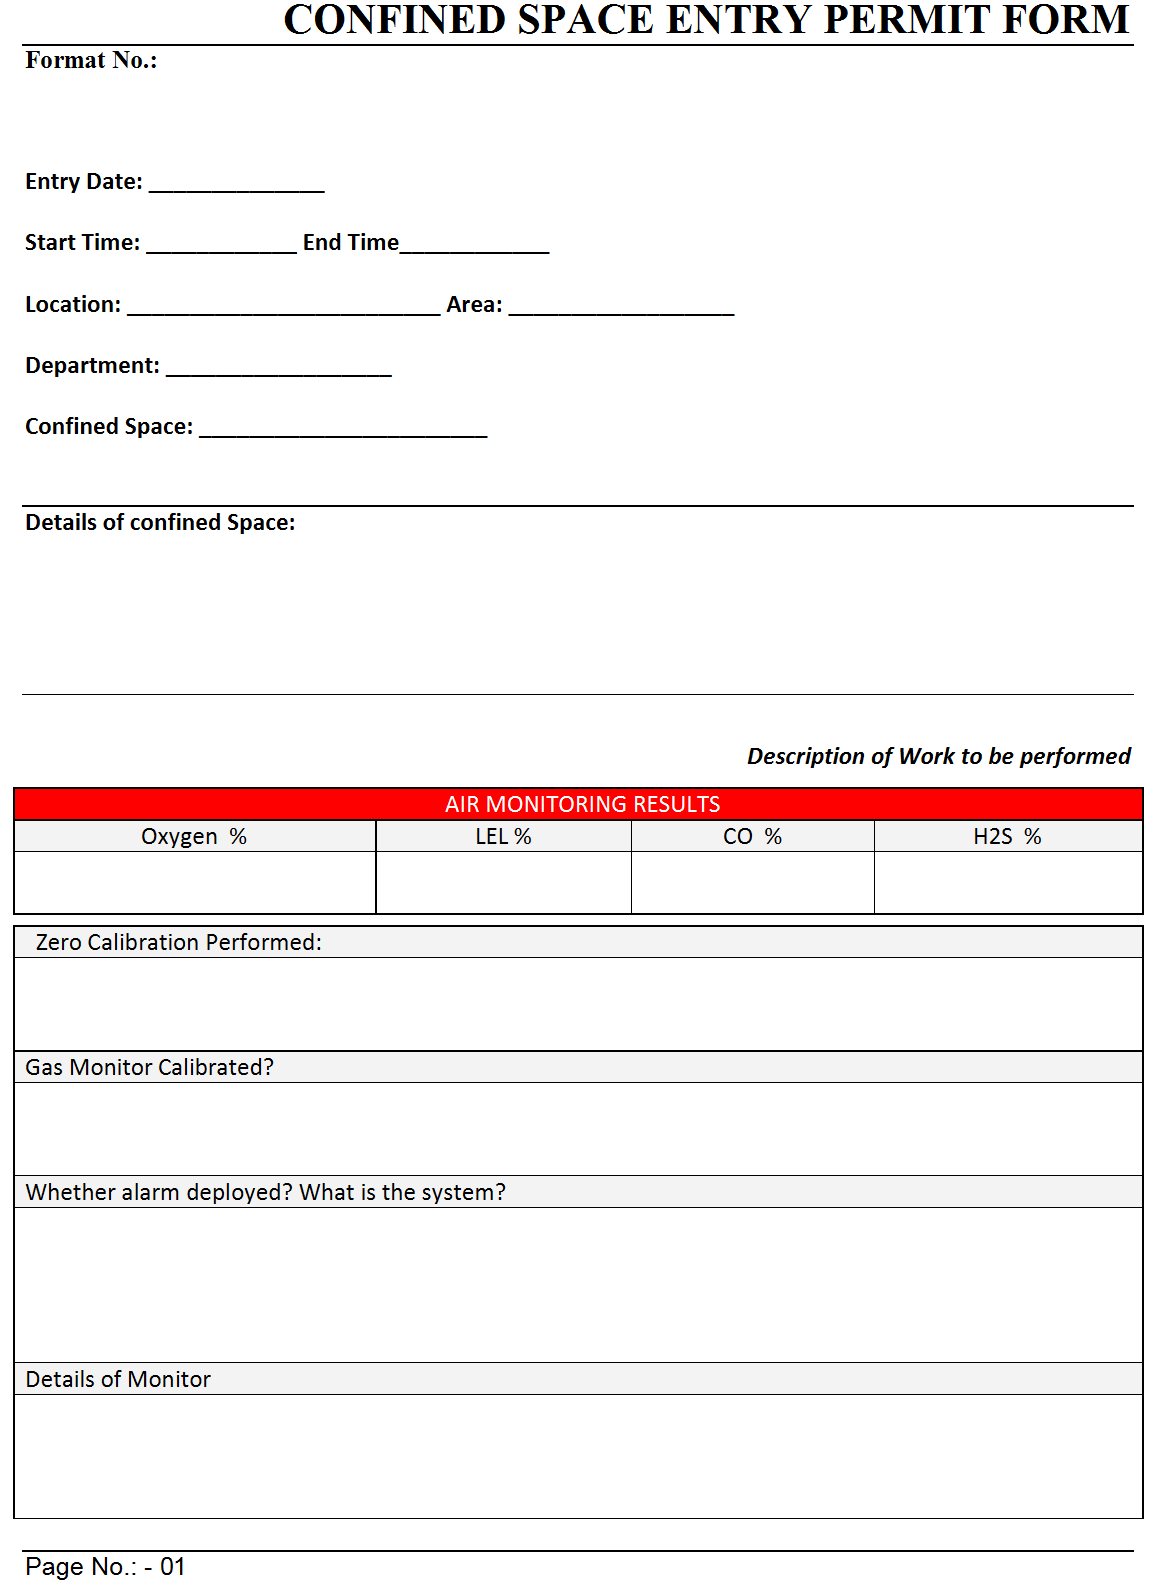 Confined space entry permit form format samples excel document confined space entry permit form format sample excel document format pdf format jpg format free download pronofoot35fo Image collections